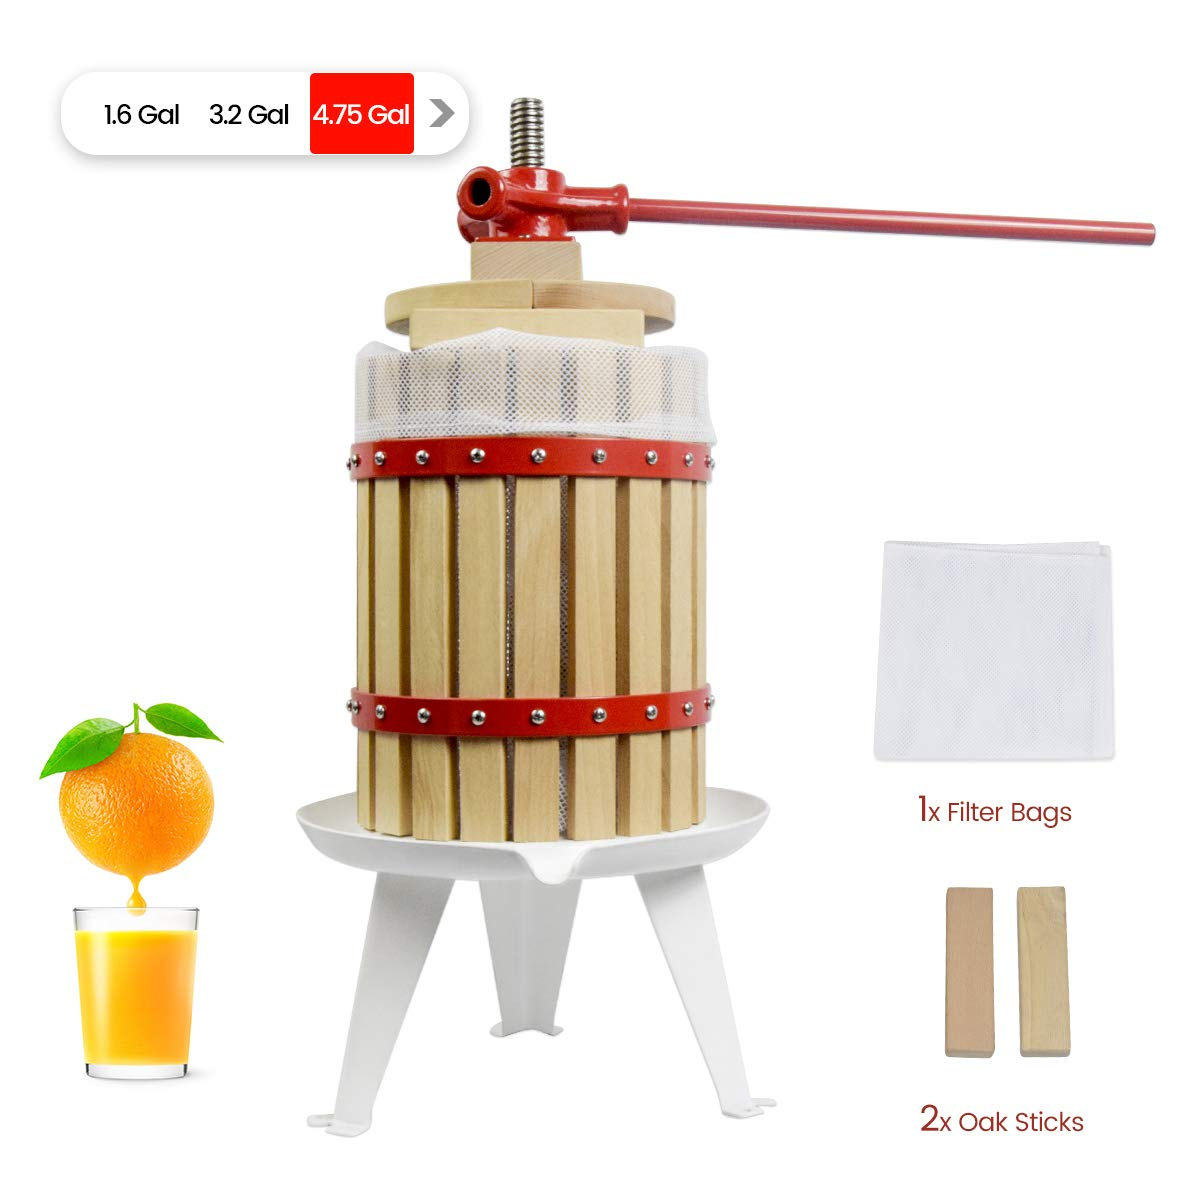 4.75 Gallon Fruit Wine Press - 100% Nature/Healthy Apple&Grape&Berries Crusher Manual Juice Maker for Kitchen, Solid Wood Basket with 2 Blocks Cider Wine Making Press (LFGB Certified,Heavy Duty) by EJWOX